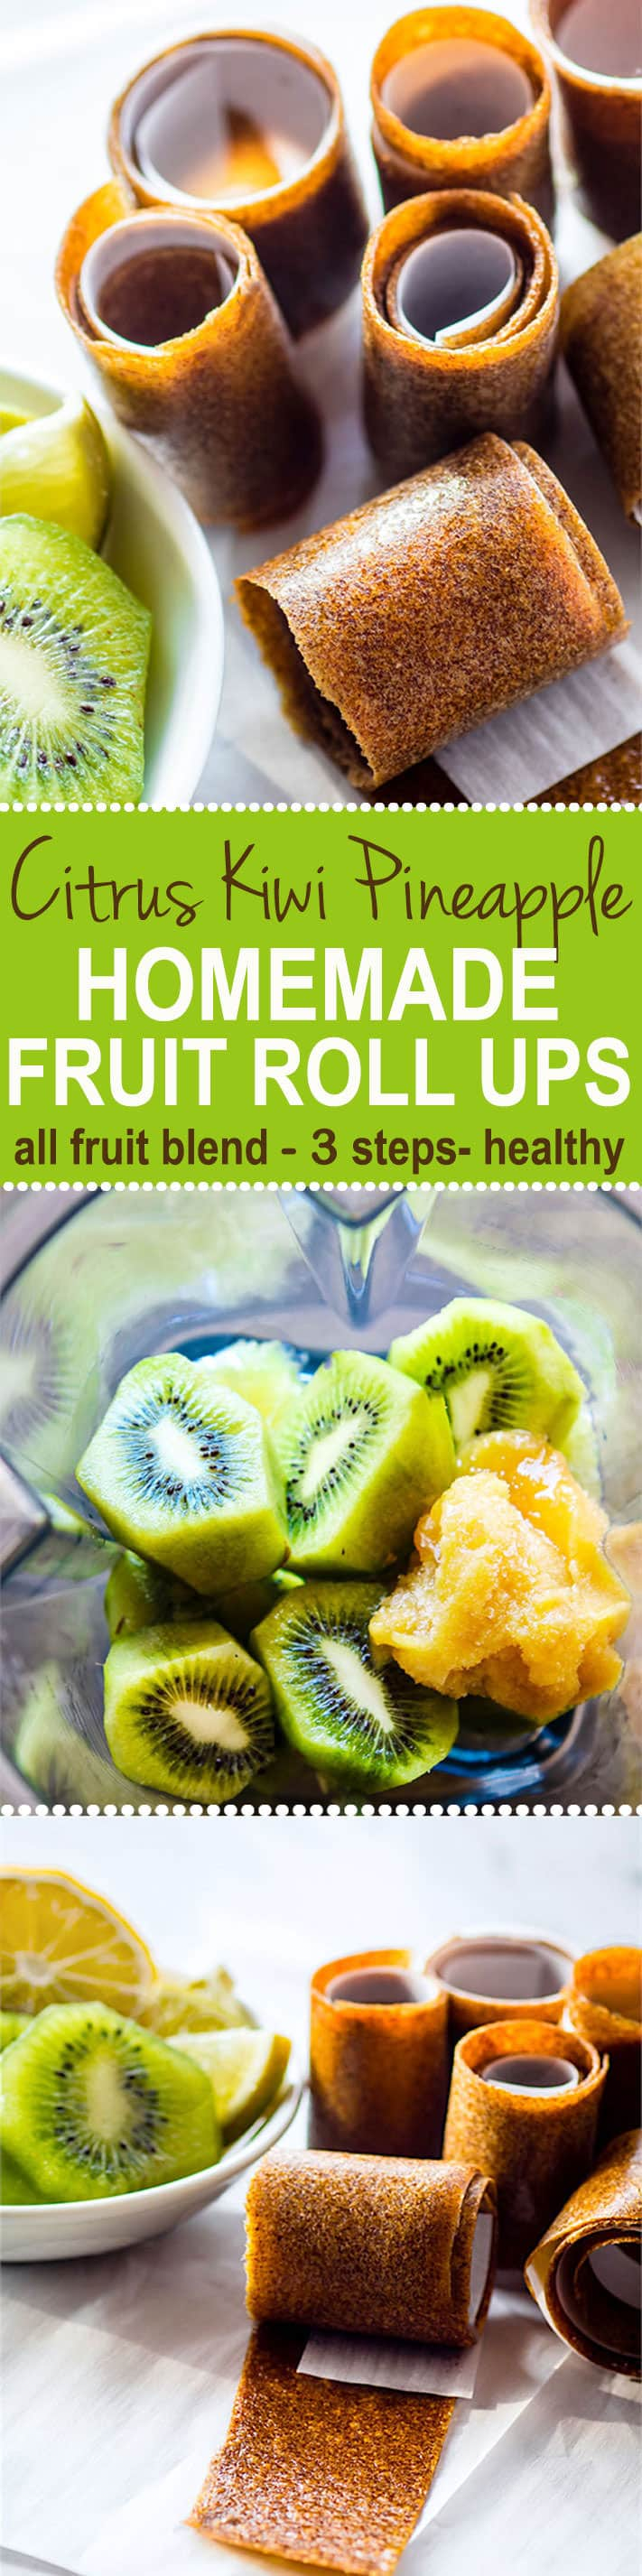 Super Simple and Healthy Citrus Kiwi Pineapple Homemade Fruit Roll Ups! These homemade fruit roll ups are an awesome snack for kids, adults, and active folk who need real food fuel! Homemade fruit rolls ups you can make in the dehydrator or oven. Real fruit based and no additives!